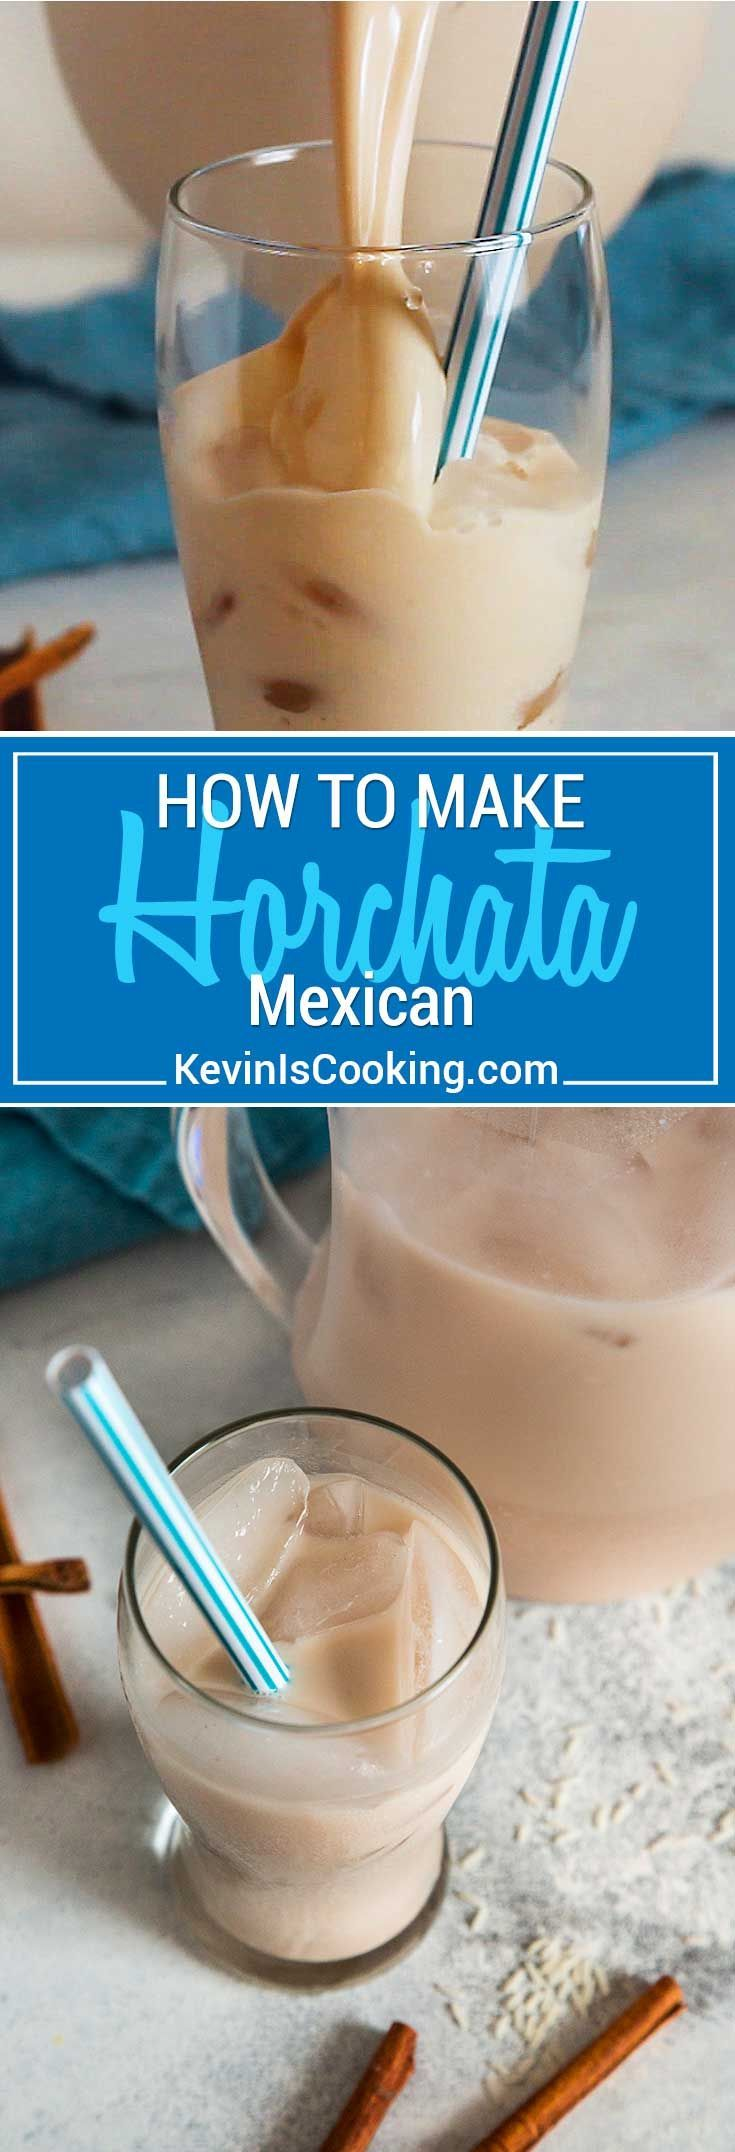 Horchata is a sweet, non-alcoholic, Mexican drink made from soaked rice, cinnamon and often times almonds. My deliciously sweet, blended beverage has a few ingredients that give it an extra touch that I feel other recipes lack.